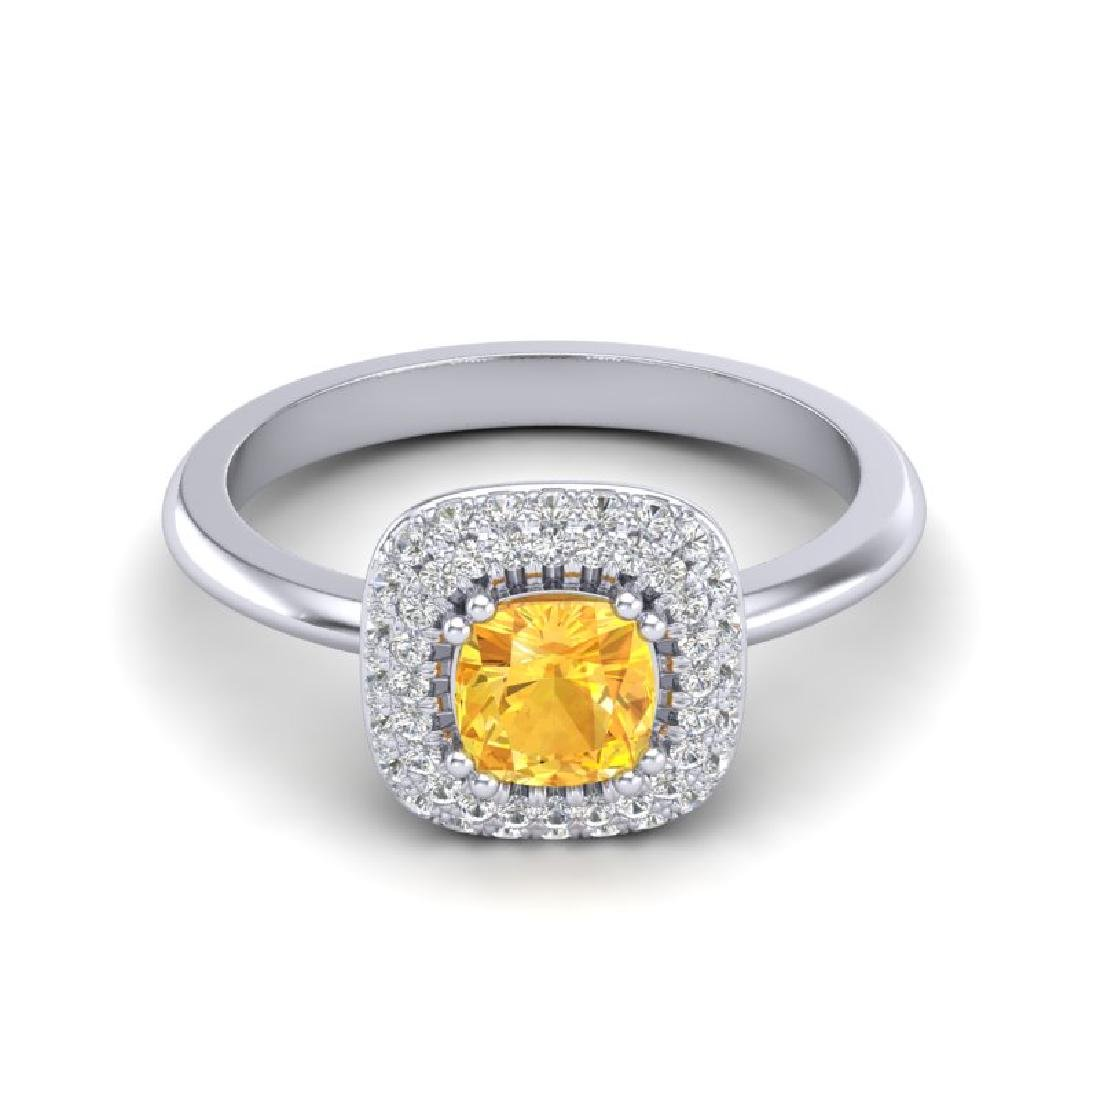 1.16 CTW Citrine & Micro VS/SI Diamond Ring Solitaire